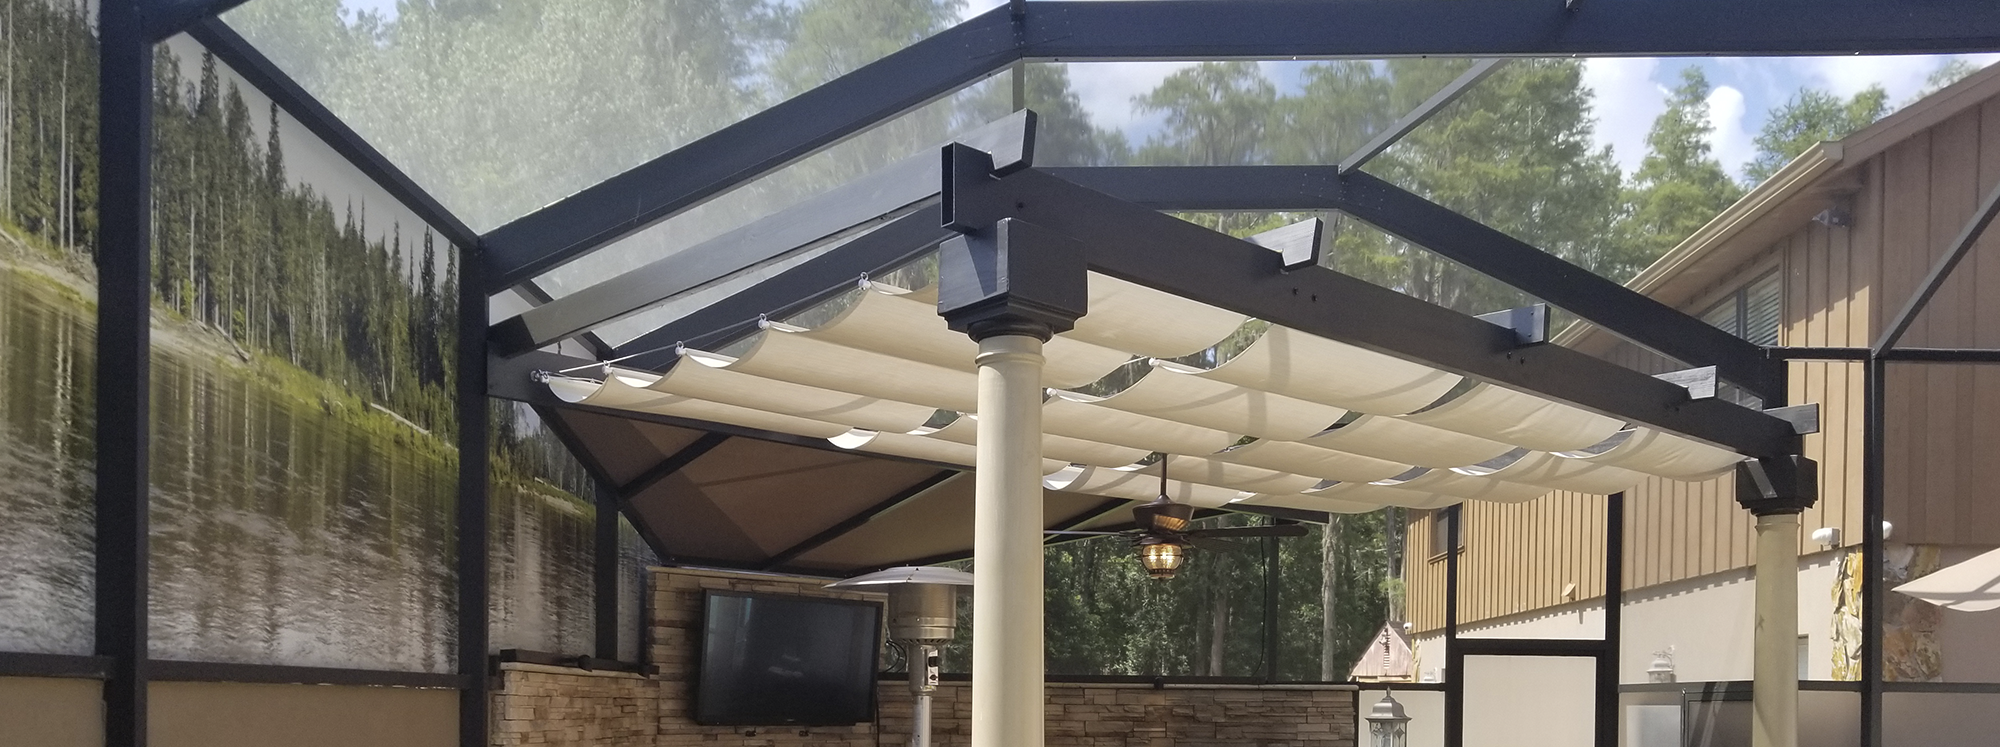 Superbe Retractable Patio Awnings, Sunshades, Canopies, Roman Shades, Slide Wire,